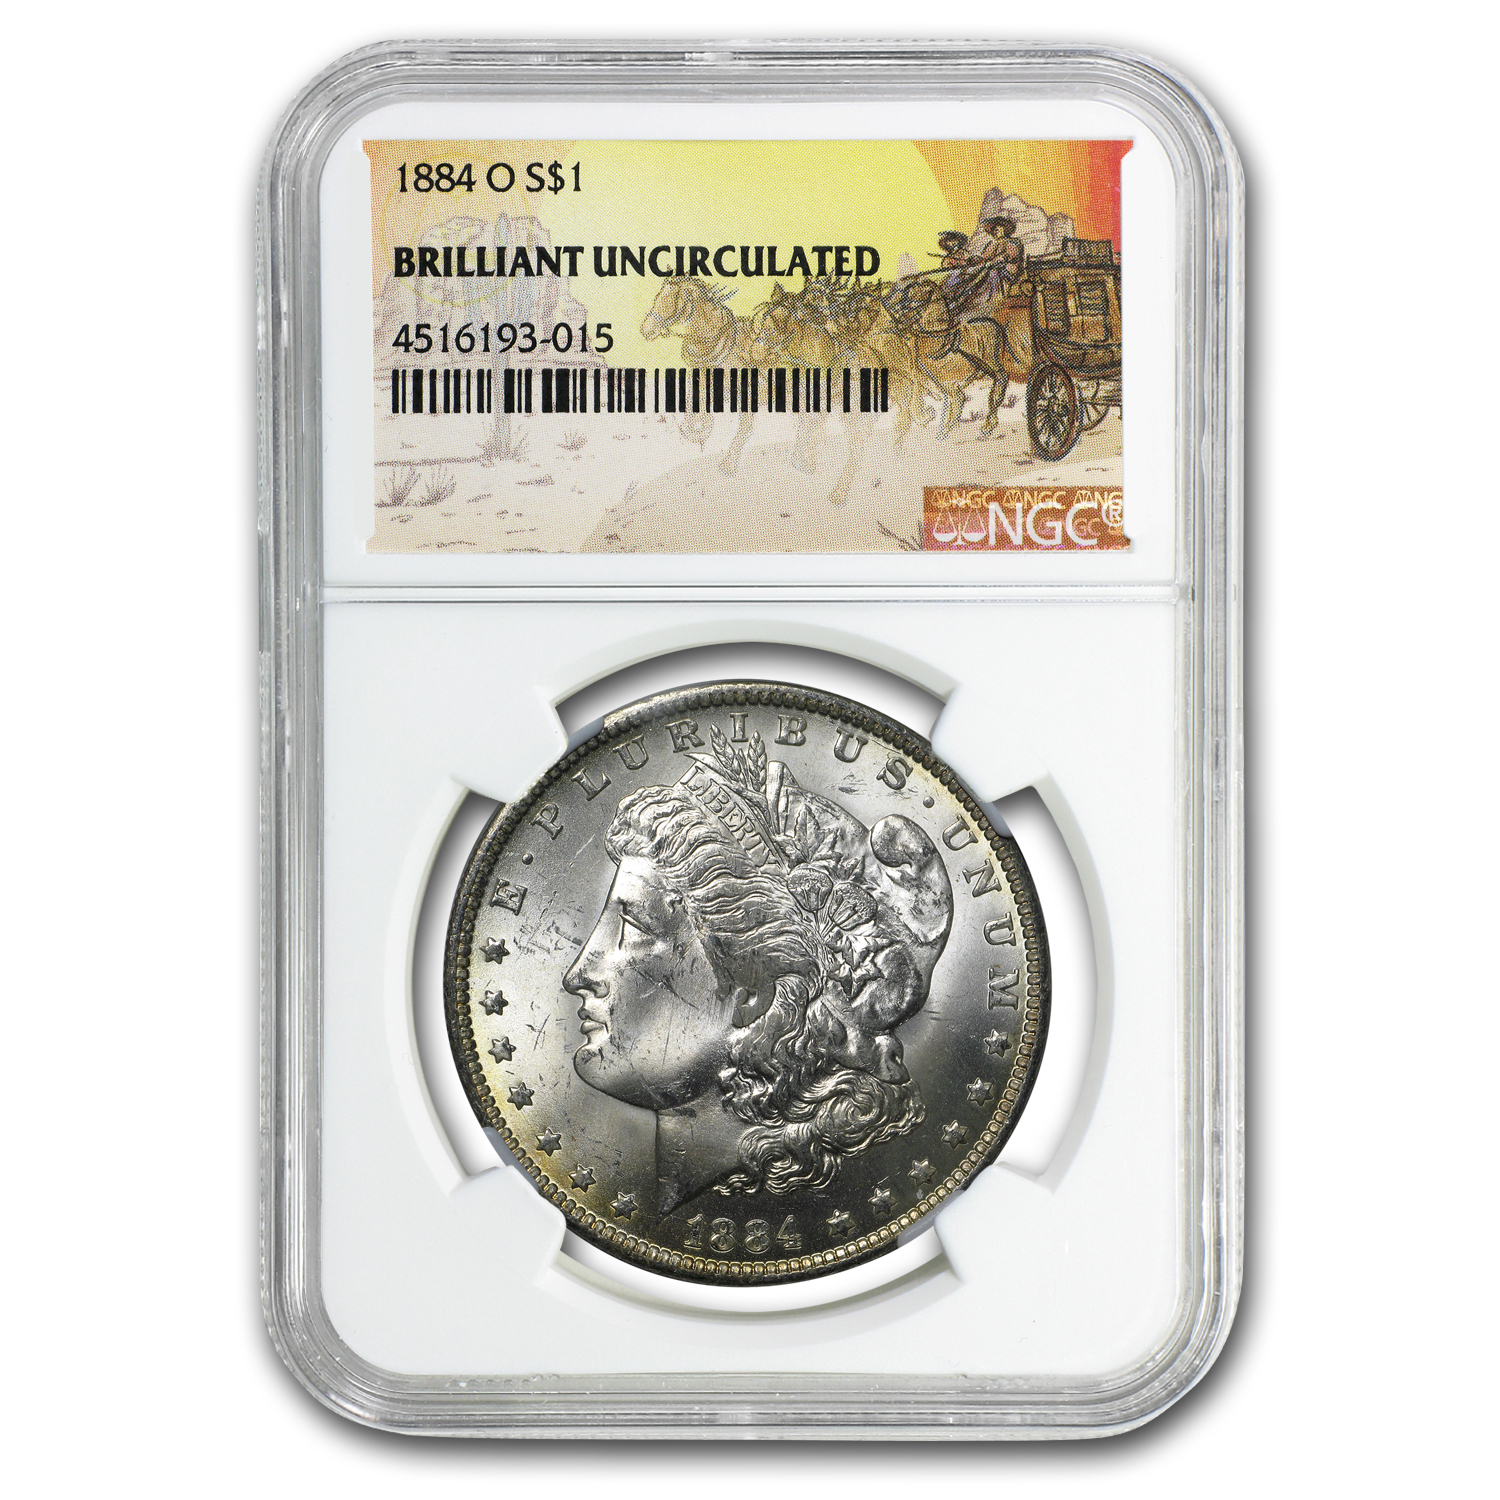 1878-1904 Stage Coach Morgan Dollar BU NGC